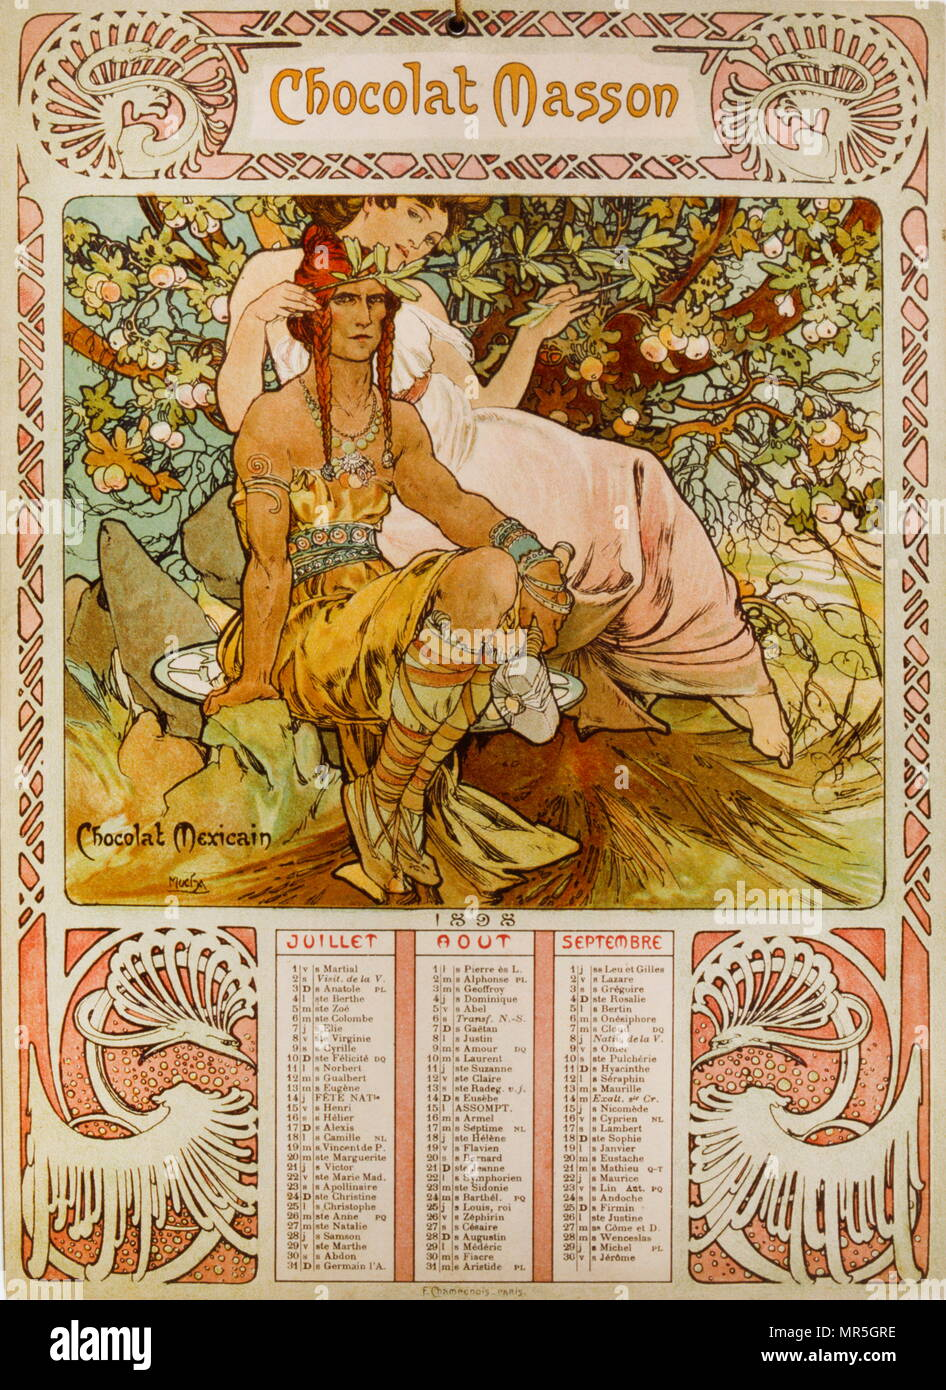 Il cioccolato Masson calendario illustrato da Mucha (1860 - 1939); un ceco di Art Nouveau pittore Immagini Stock